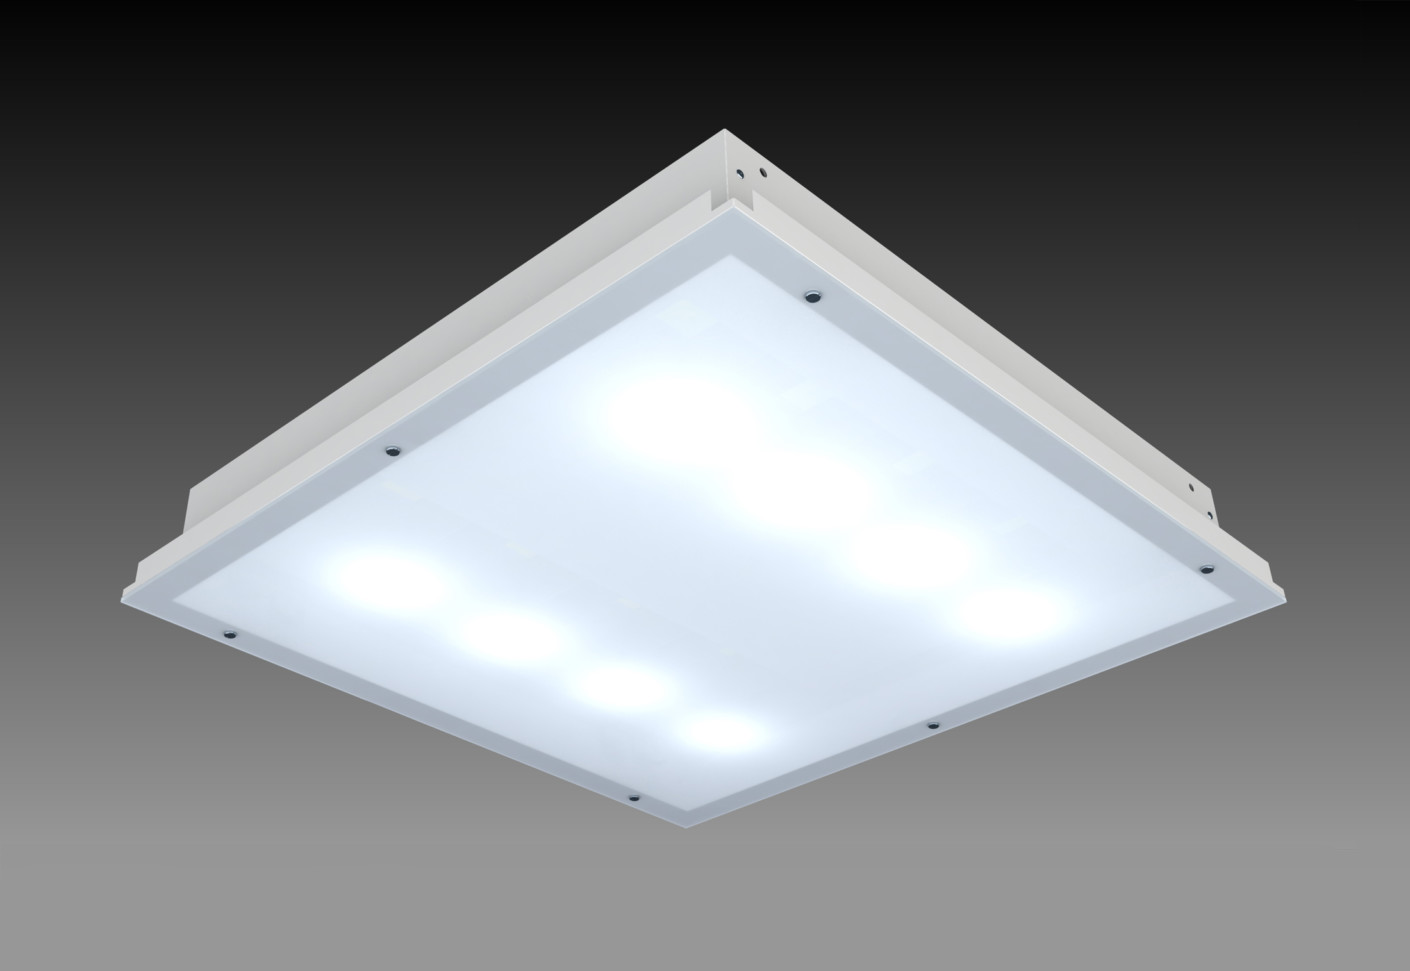 Led clean room light fixtures lighting designs clean room lighting fixtures choice image home arubaitofo Image collections